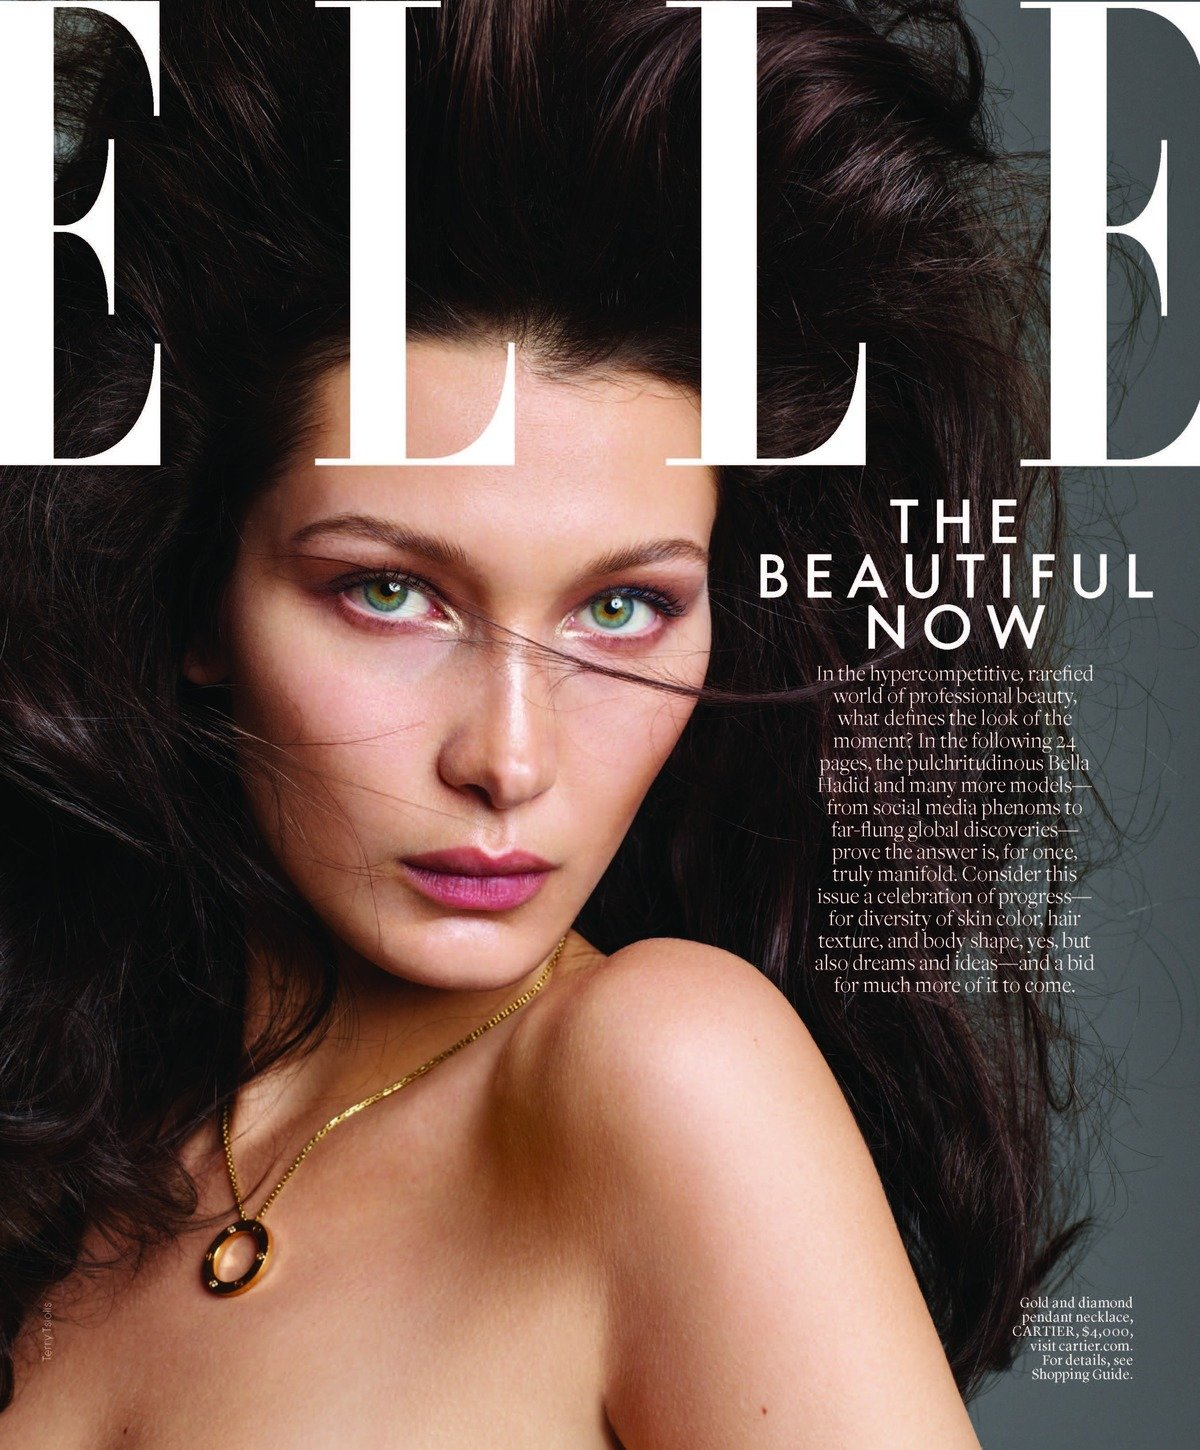 Elle may2017 coverstory page 2 1200 xxx q85